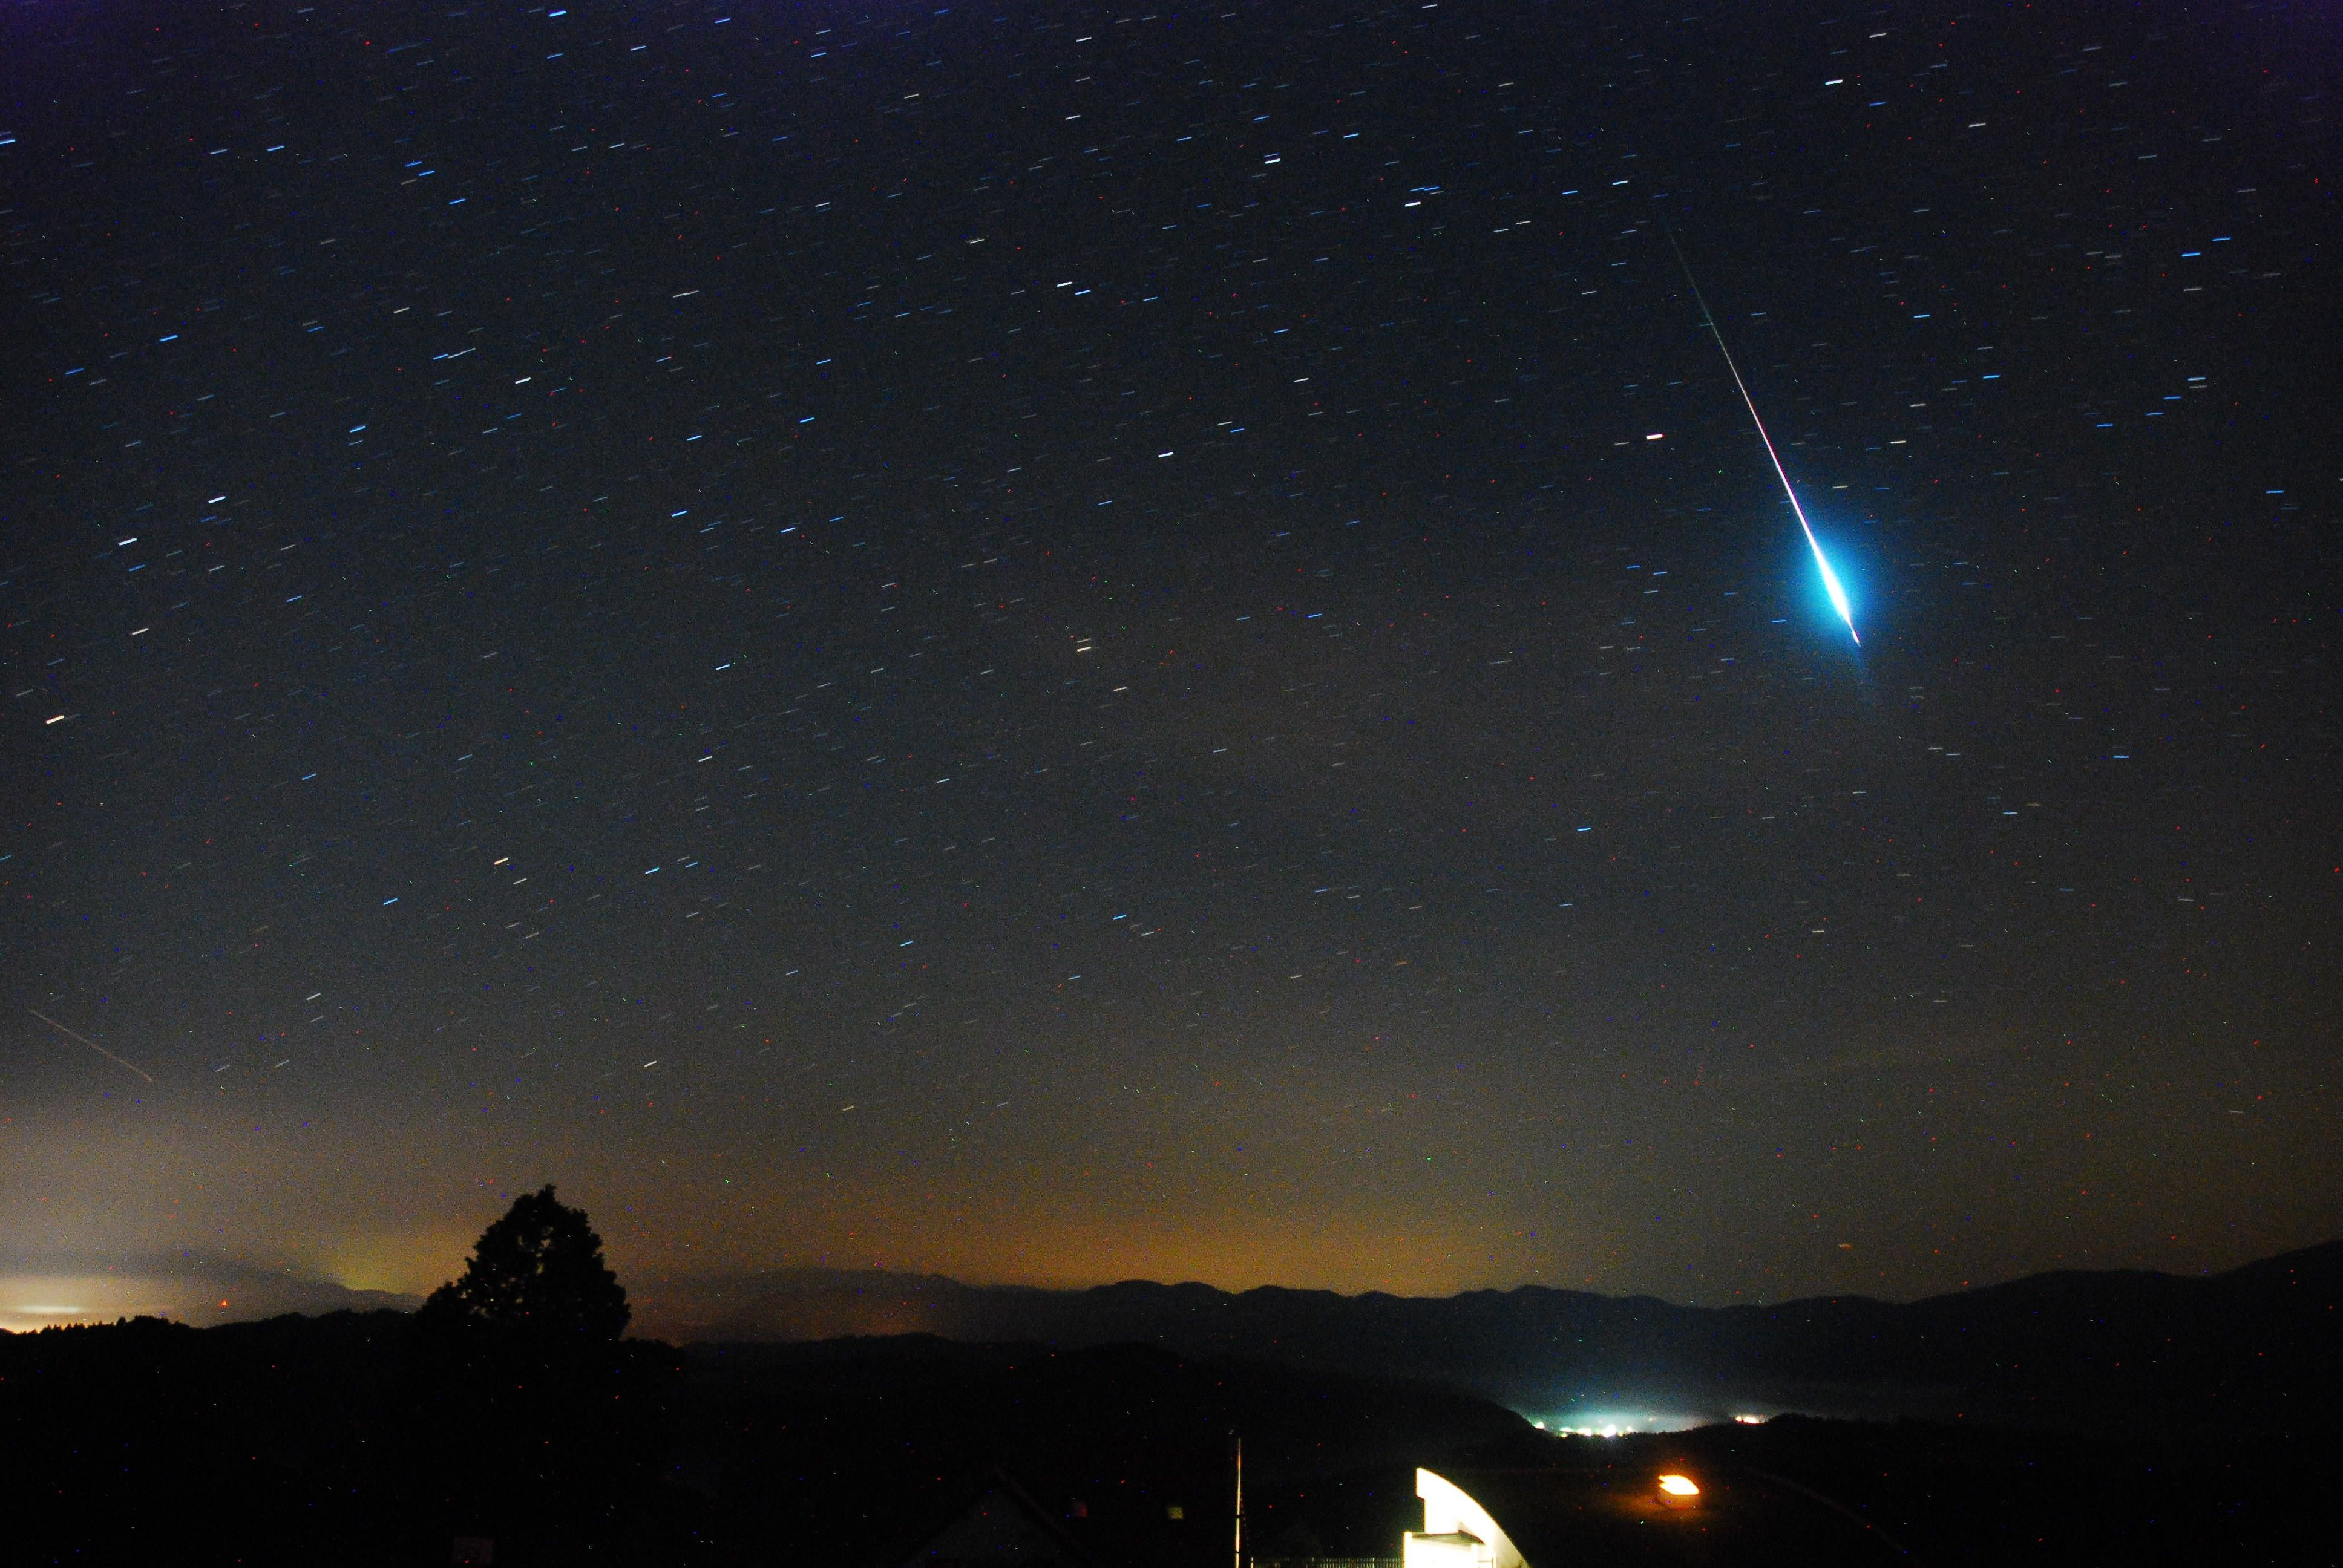 2019 meteor shower calendar – which meteor showers to see this year